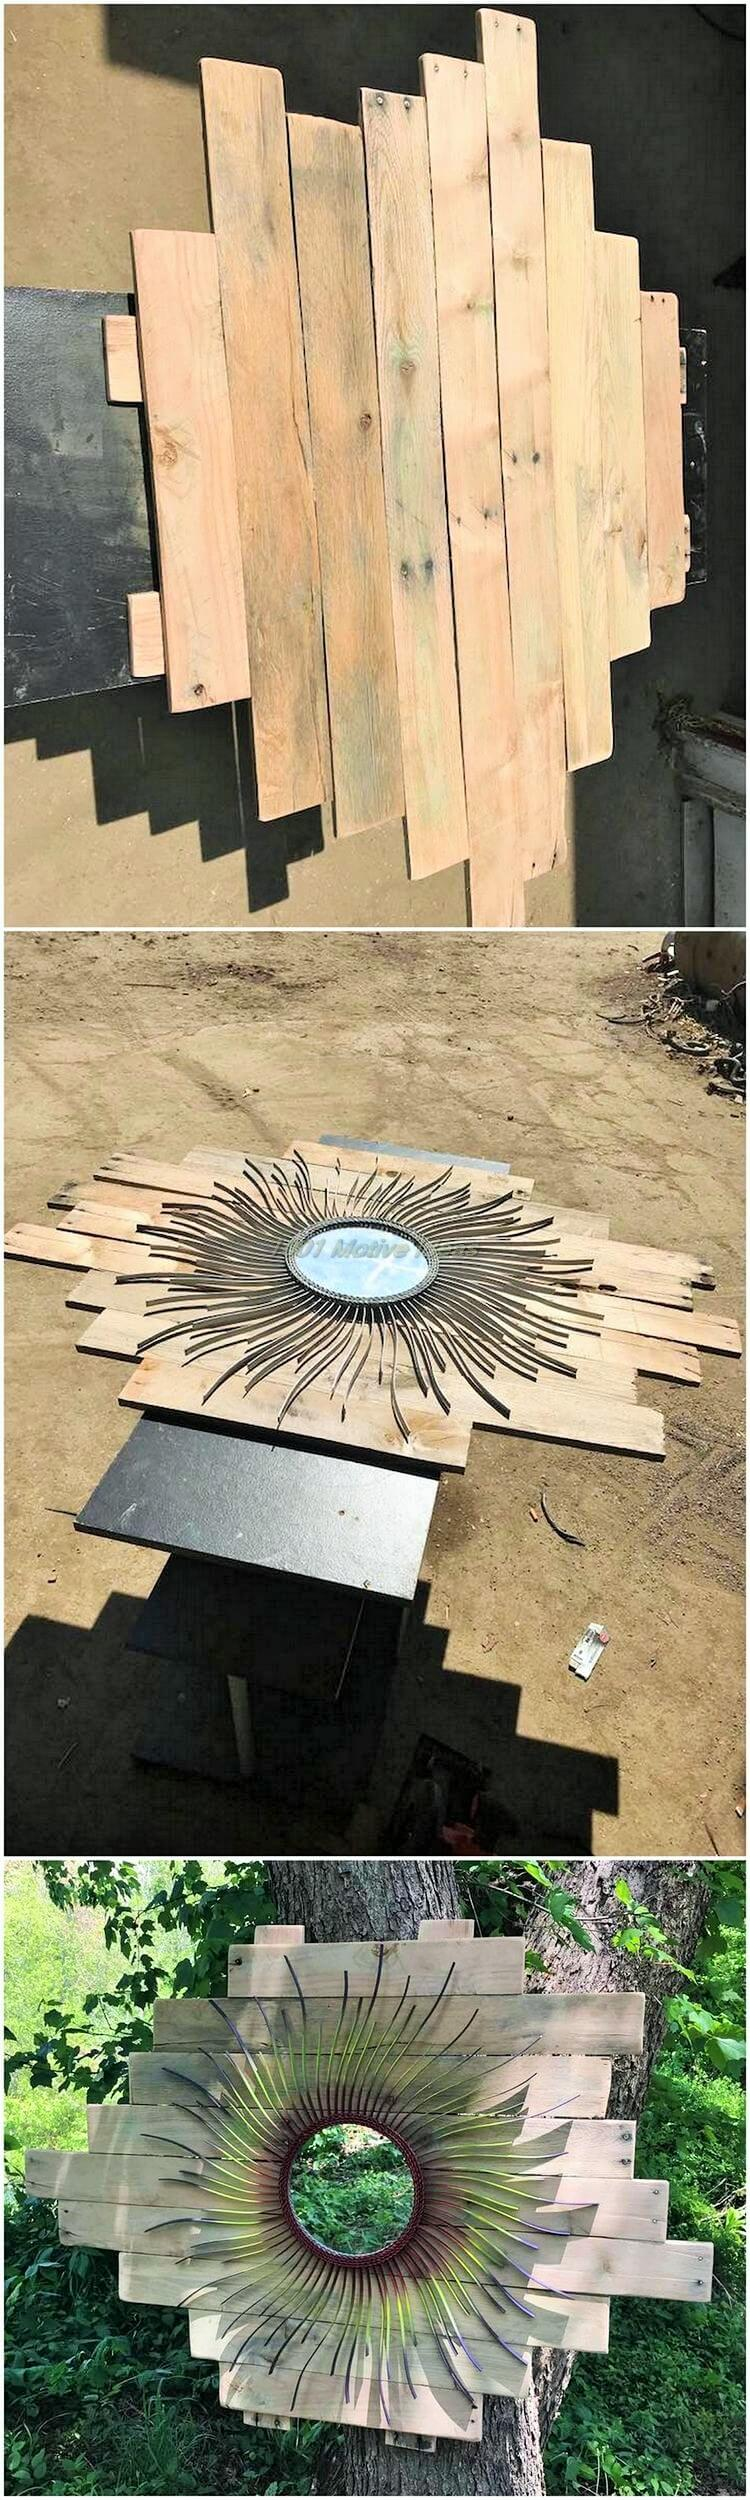 wooden-Pallet-furniture-Project-Ideas-002